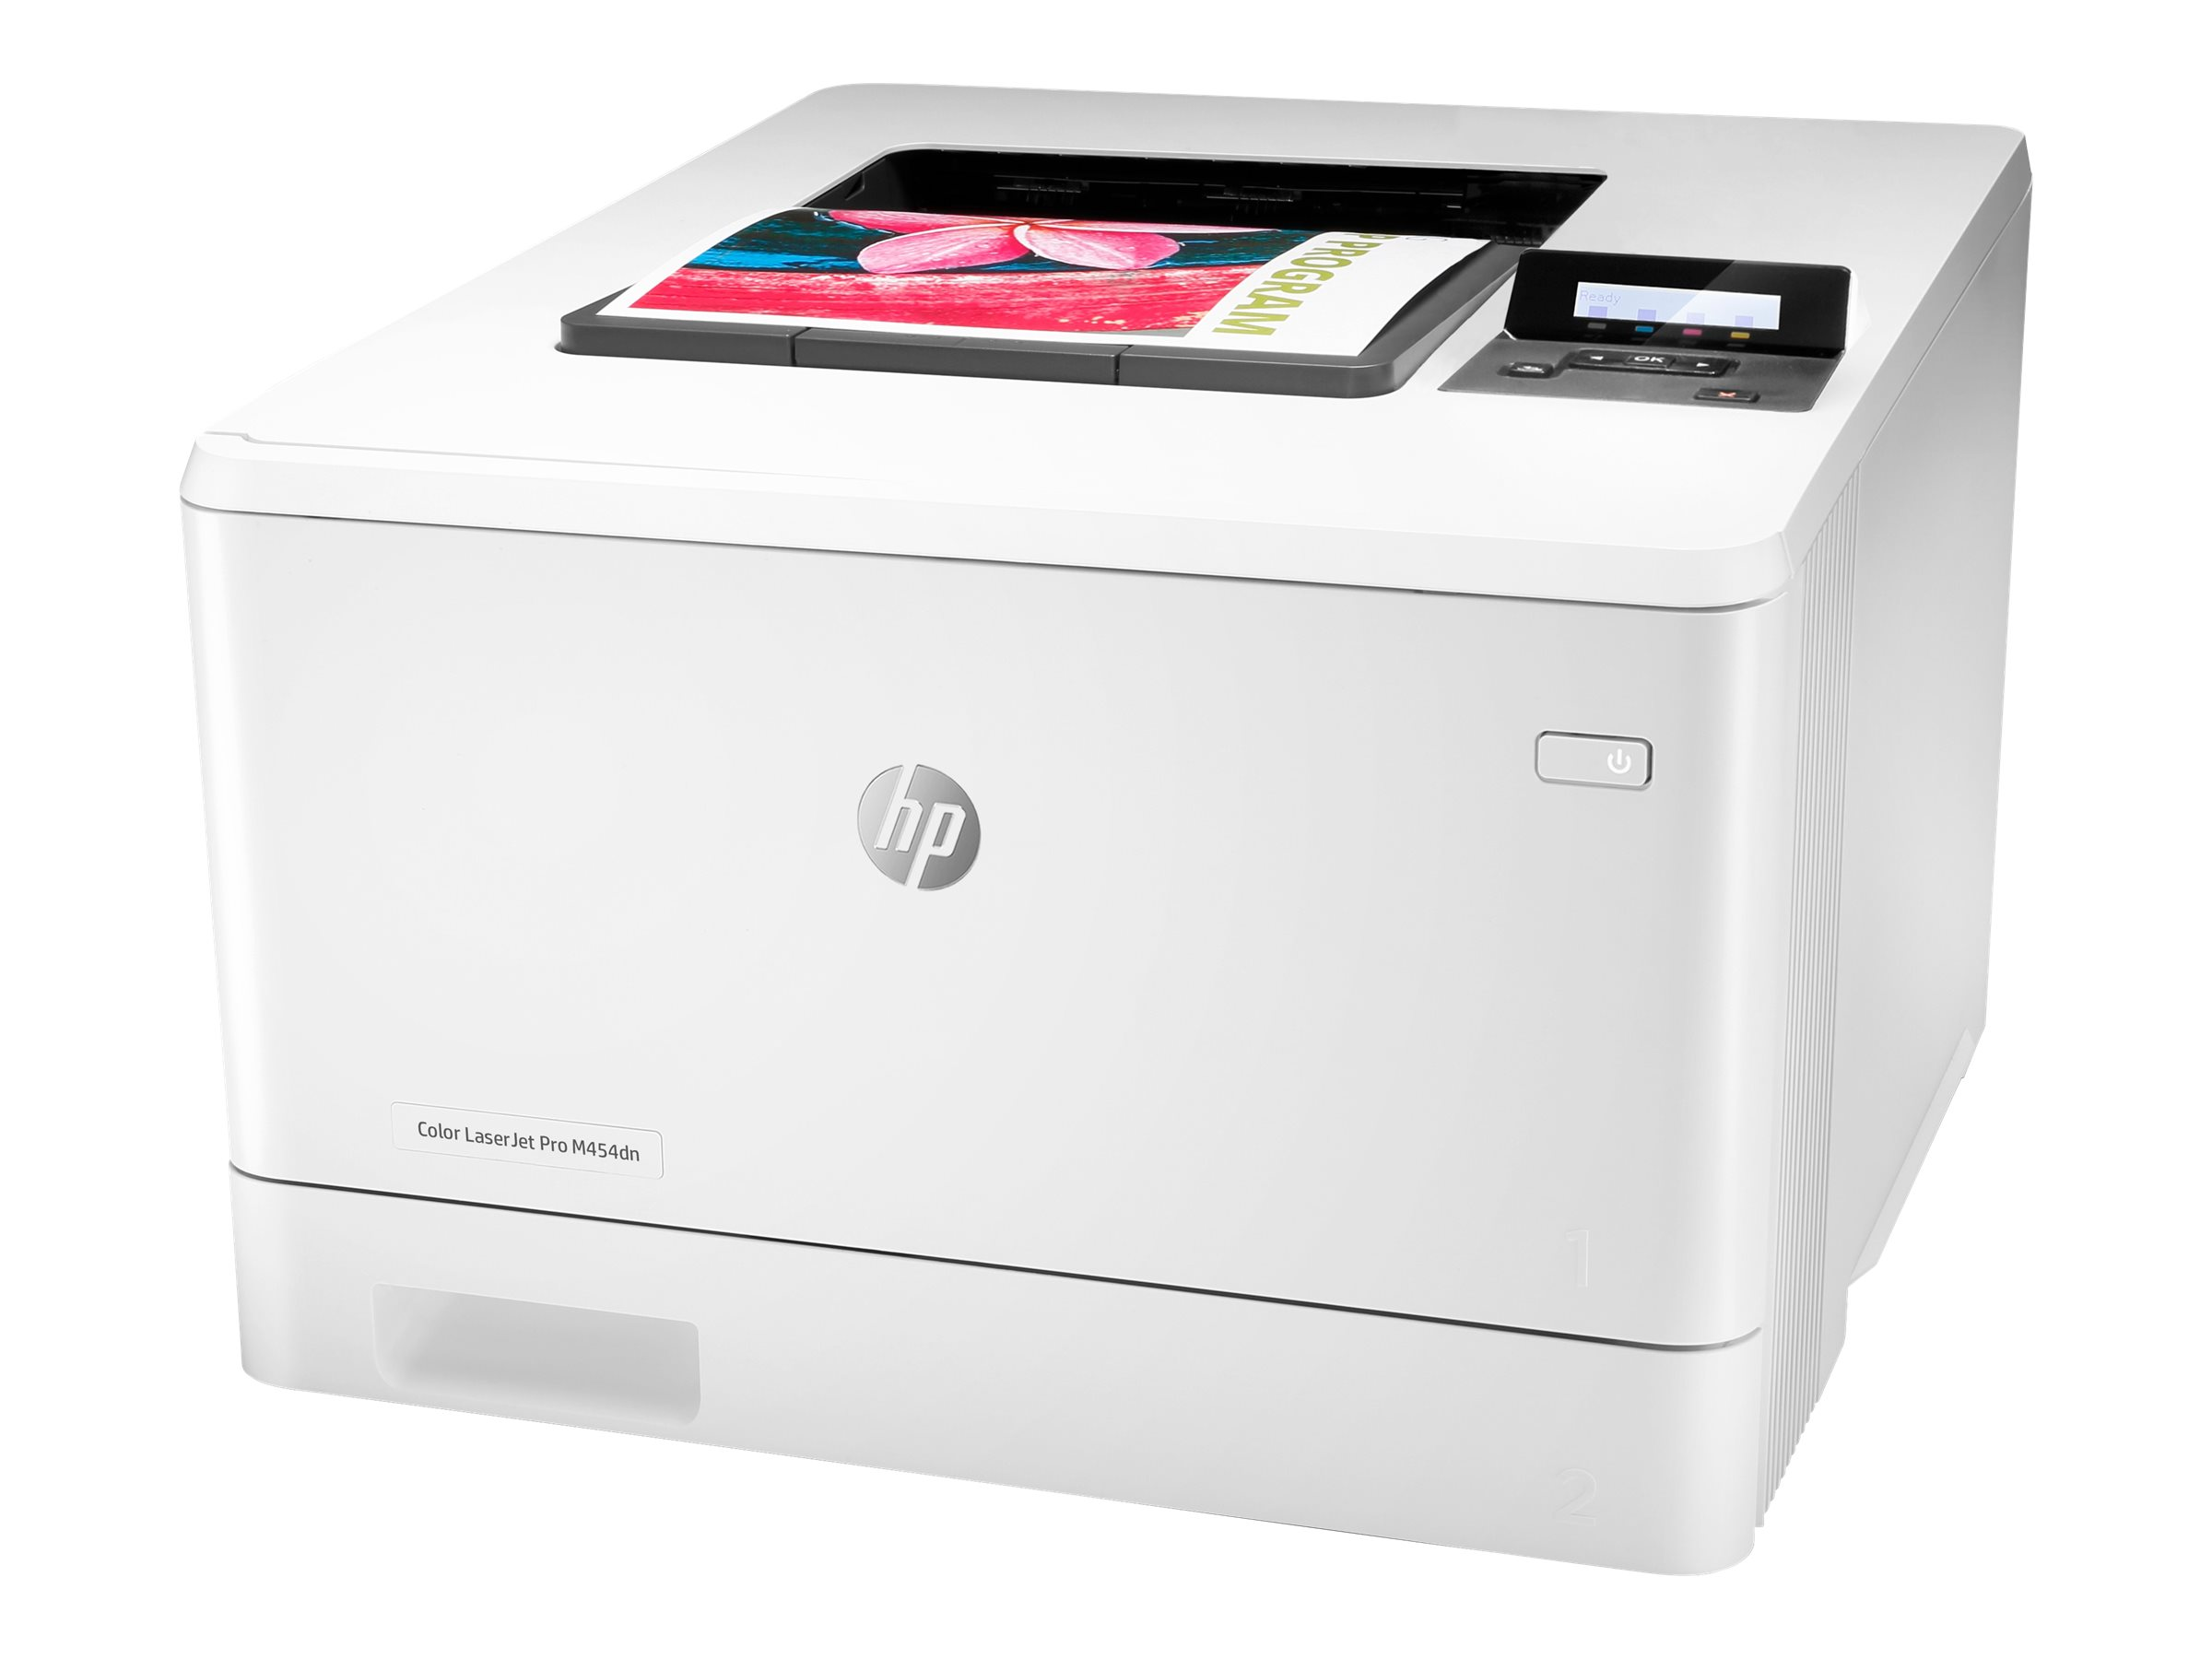 HP Color LaserJet Pro M454dn - printer - color - laser